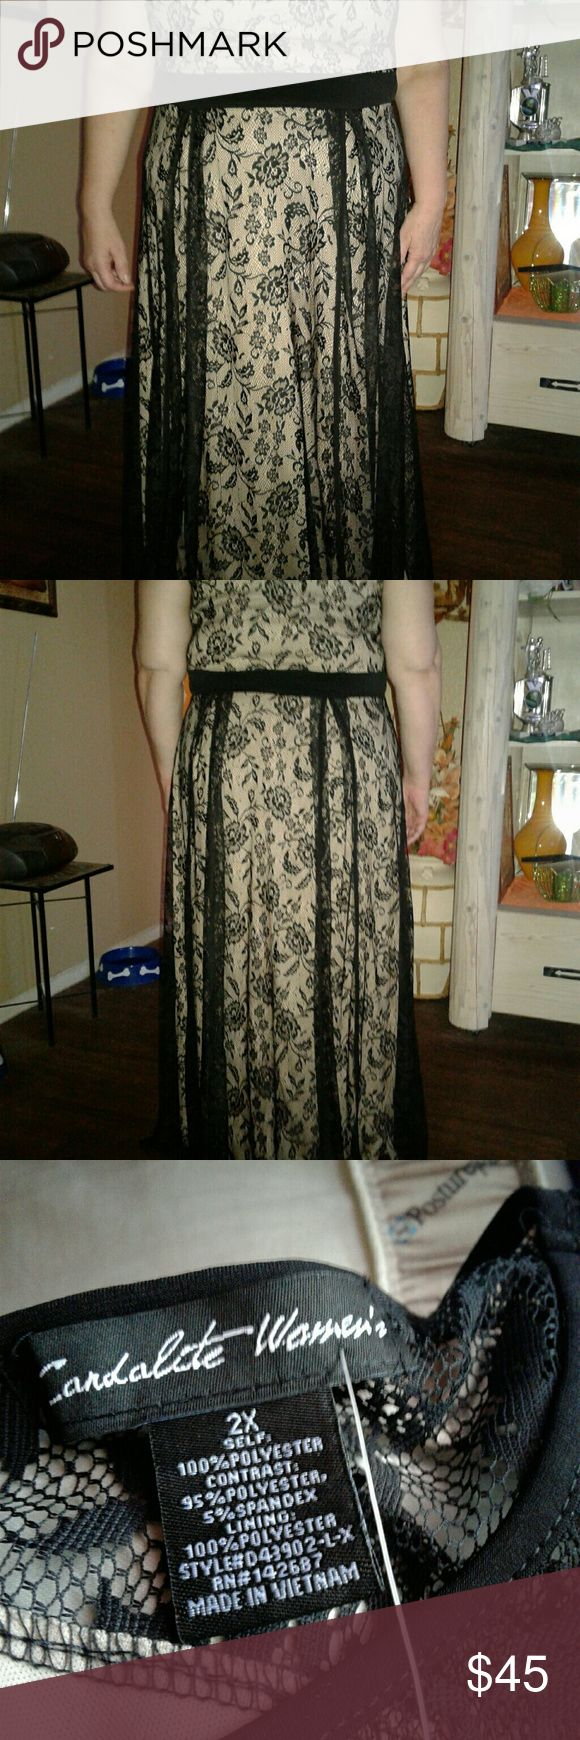 Beige/Black Lace Overlay SIZE 22 NWT Beautiful lite airy black lace sections for slimming  (My model is camera shy because she just had a baby boy 3 weeks ago... I say she looks beautiful...what do you poshers think) this dress is semi casual or dressy Dresses Maxi